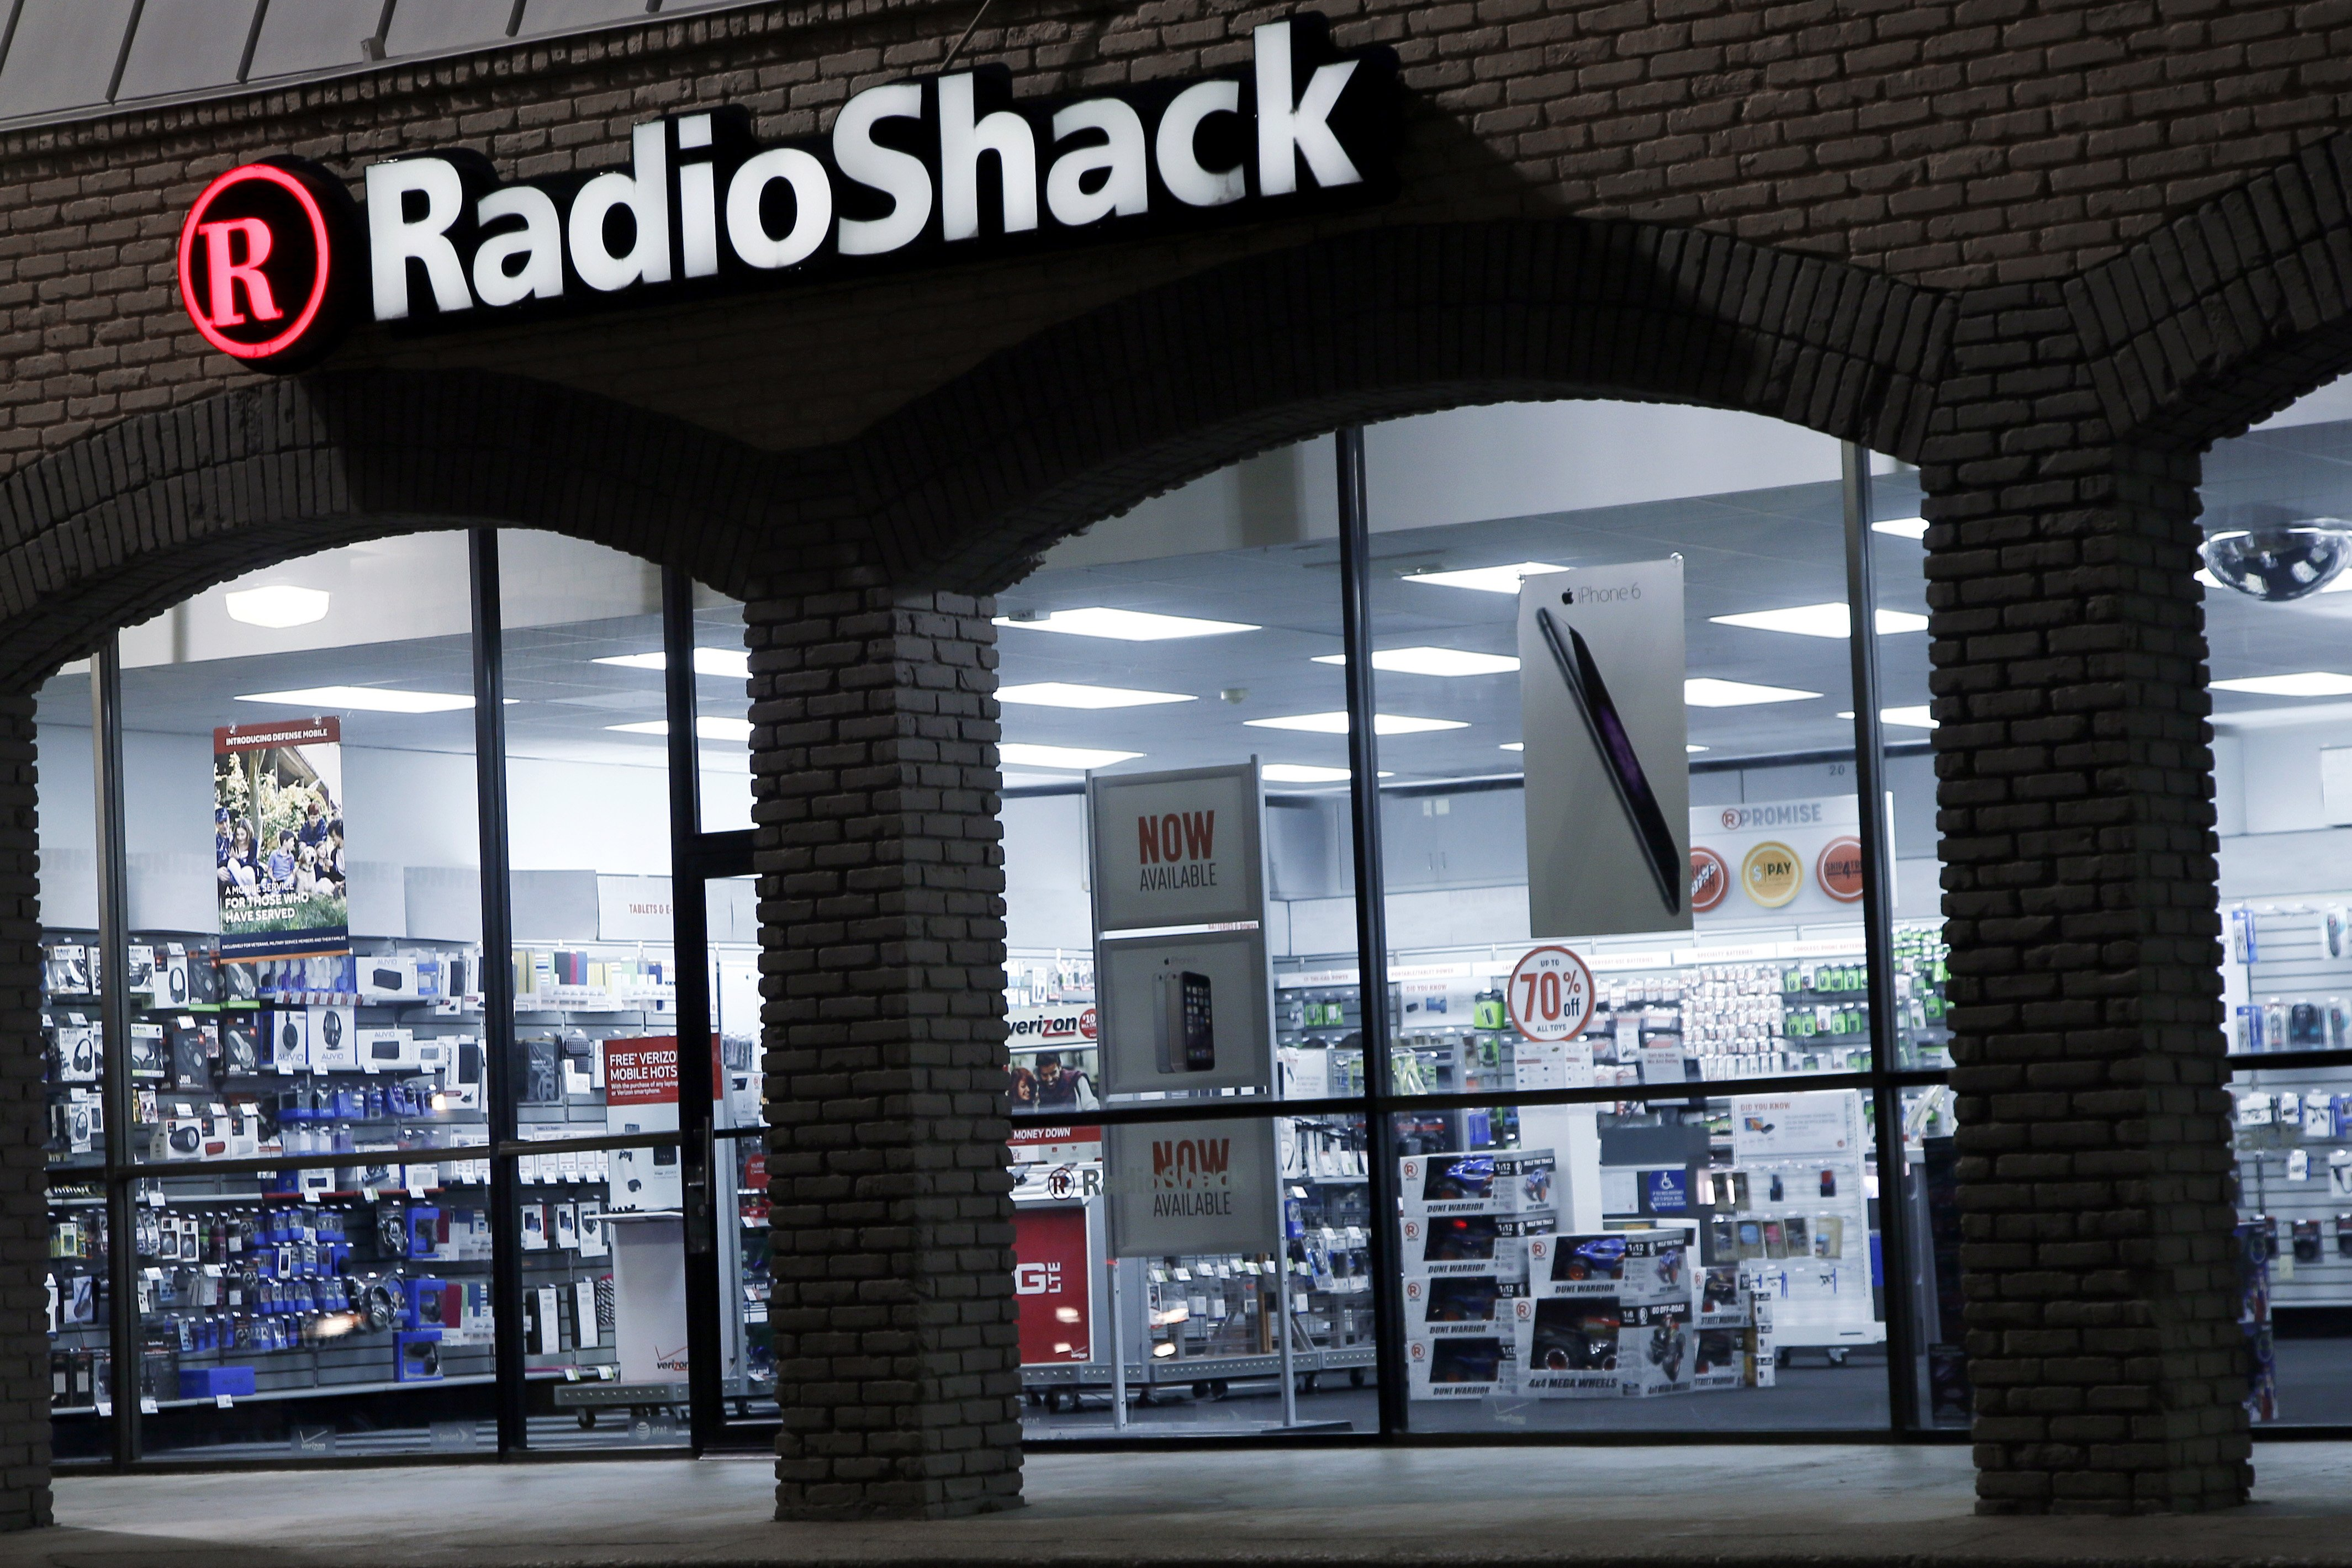 A RadioShack store location sits empty of customers, Feb. 3, 2015, in Richardson, Tx.